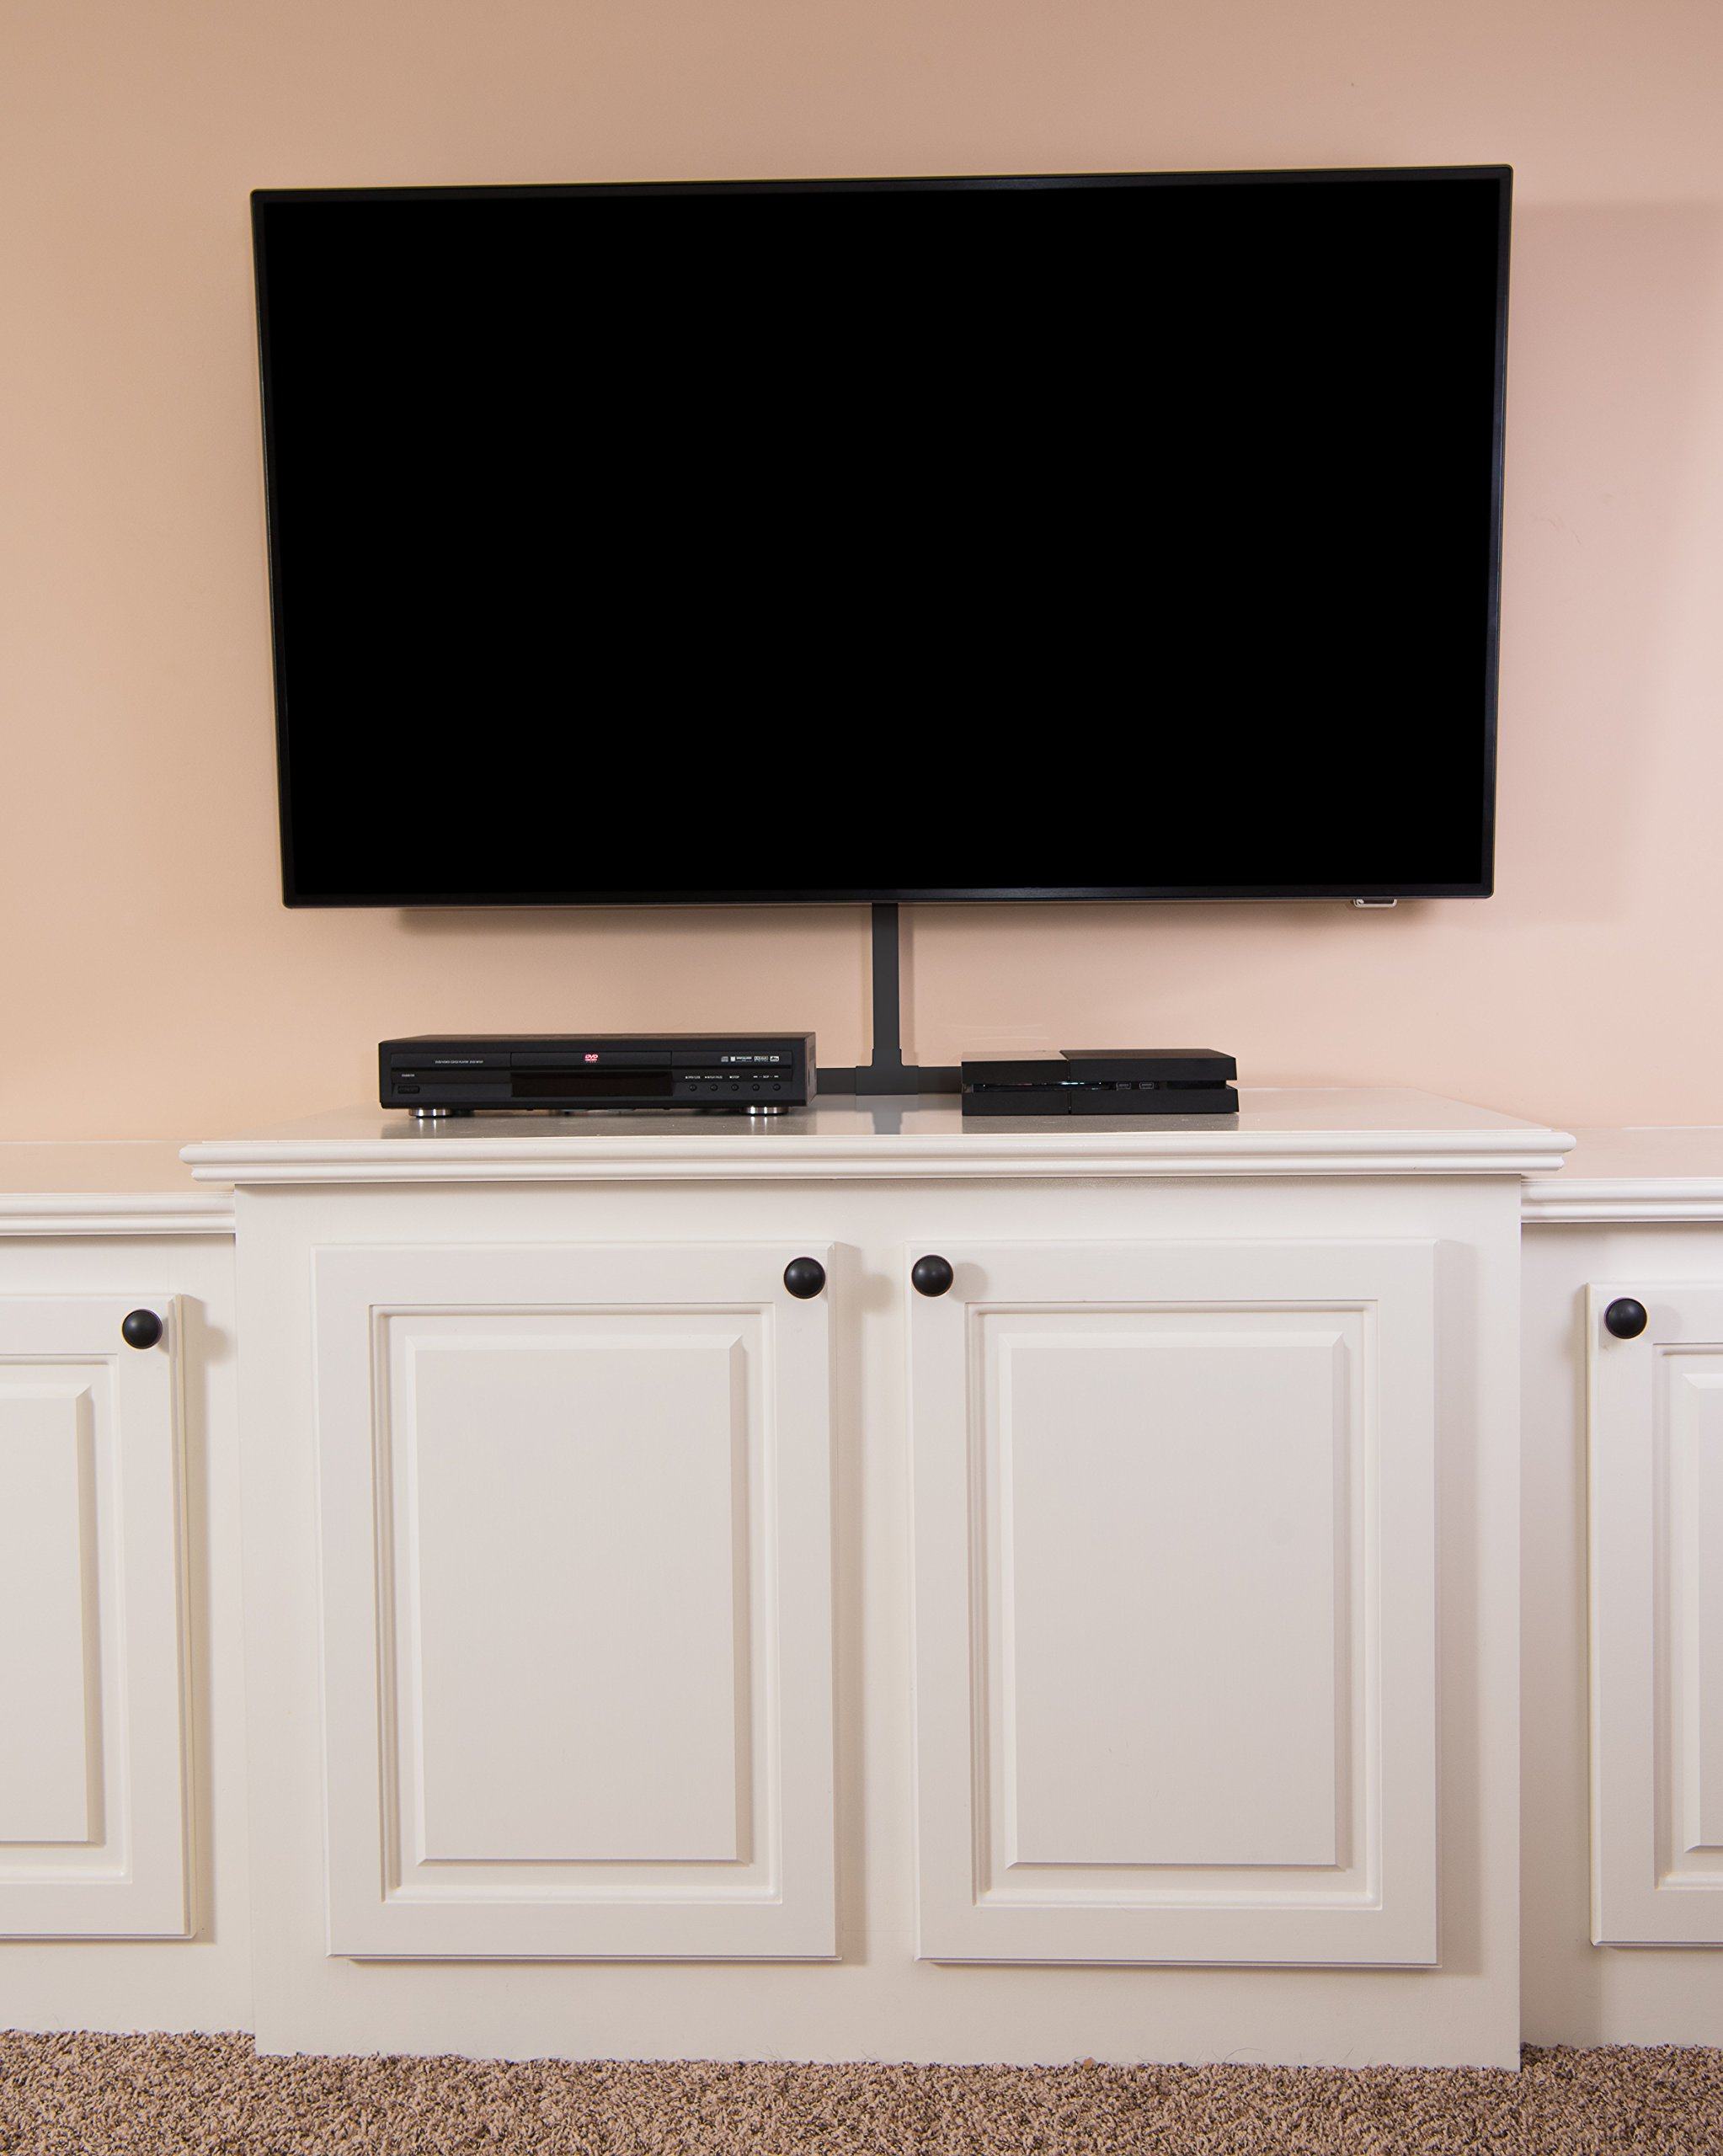 Black Cable Concealer On-Wall Cord Cover Raceway Kit - Cable ...